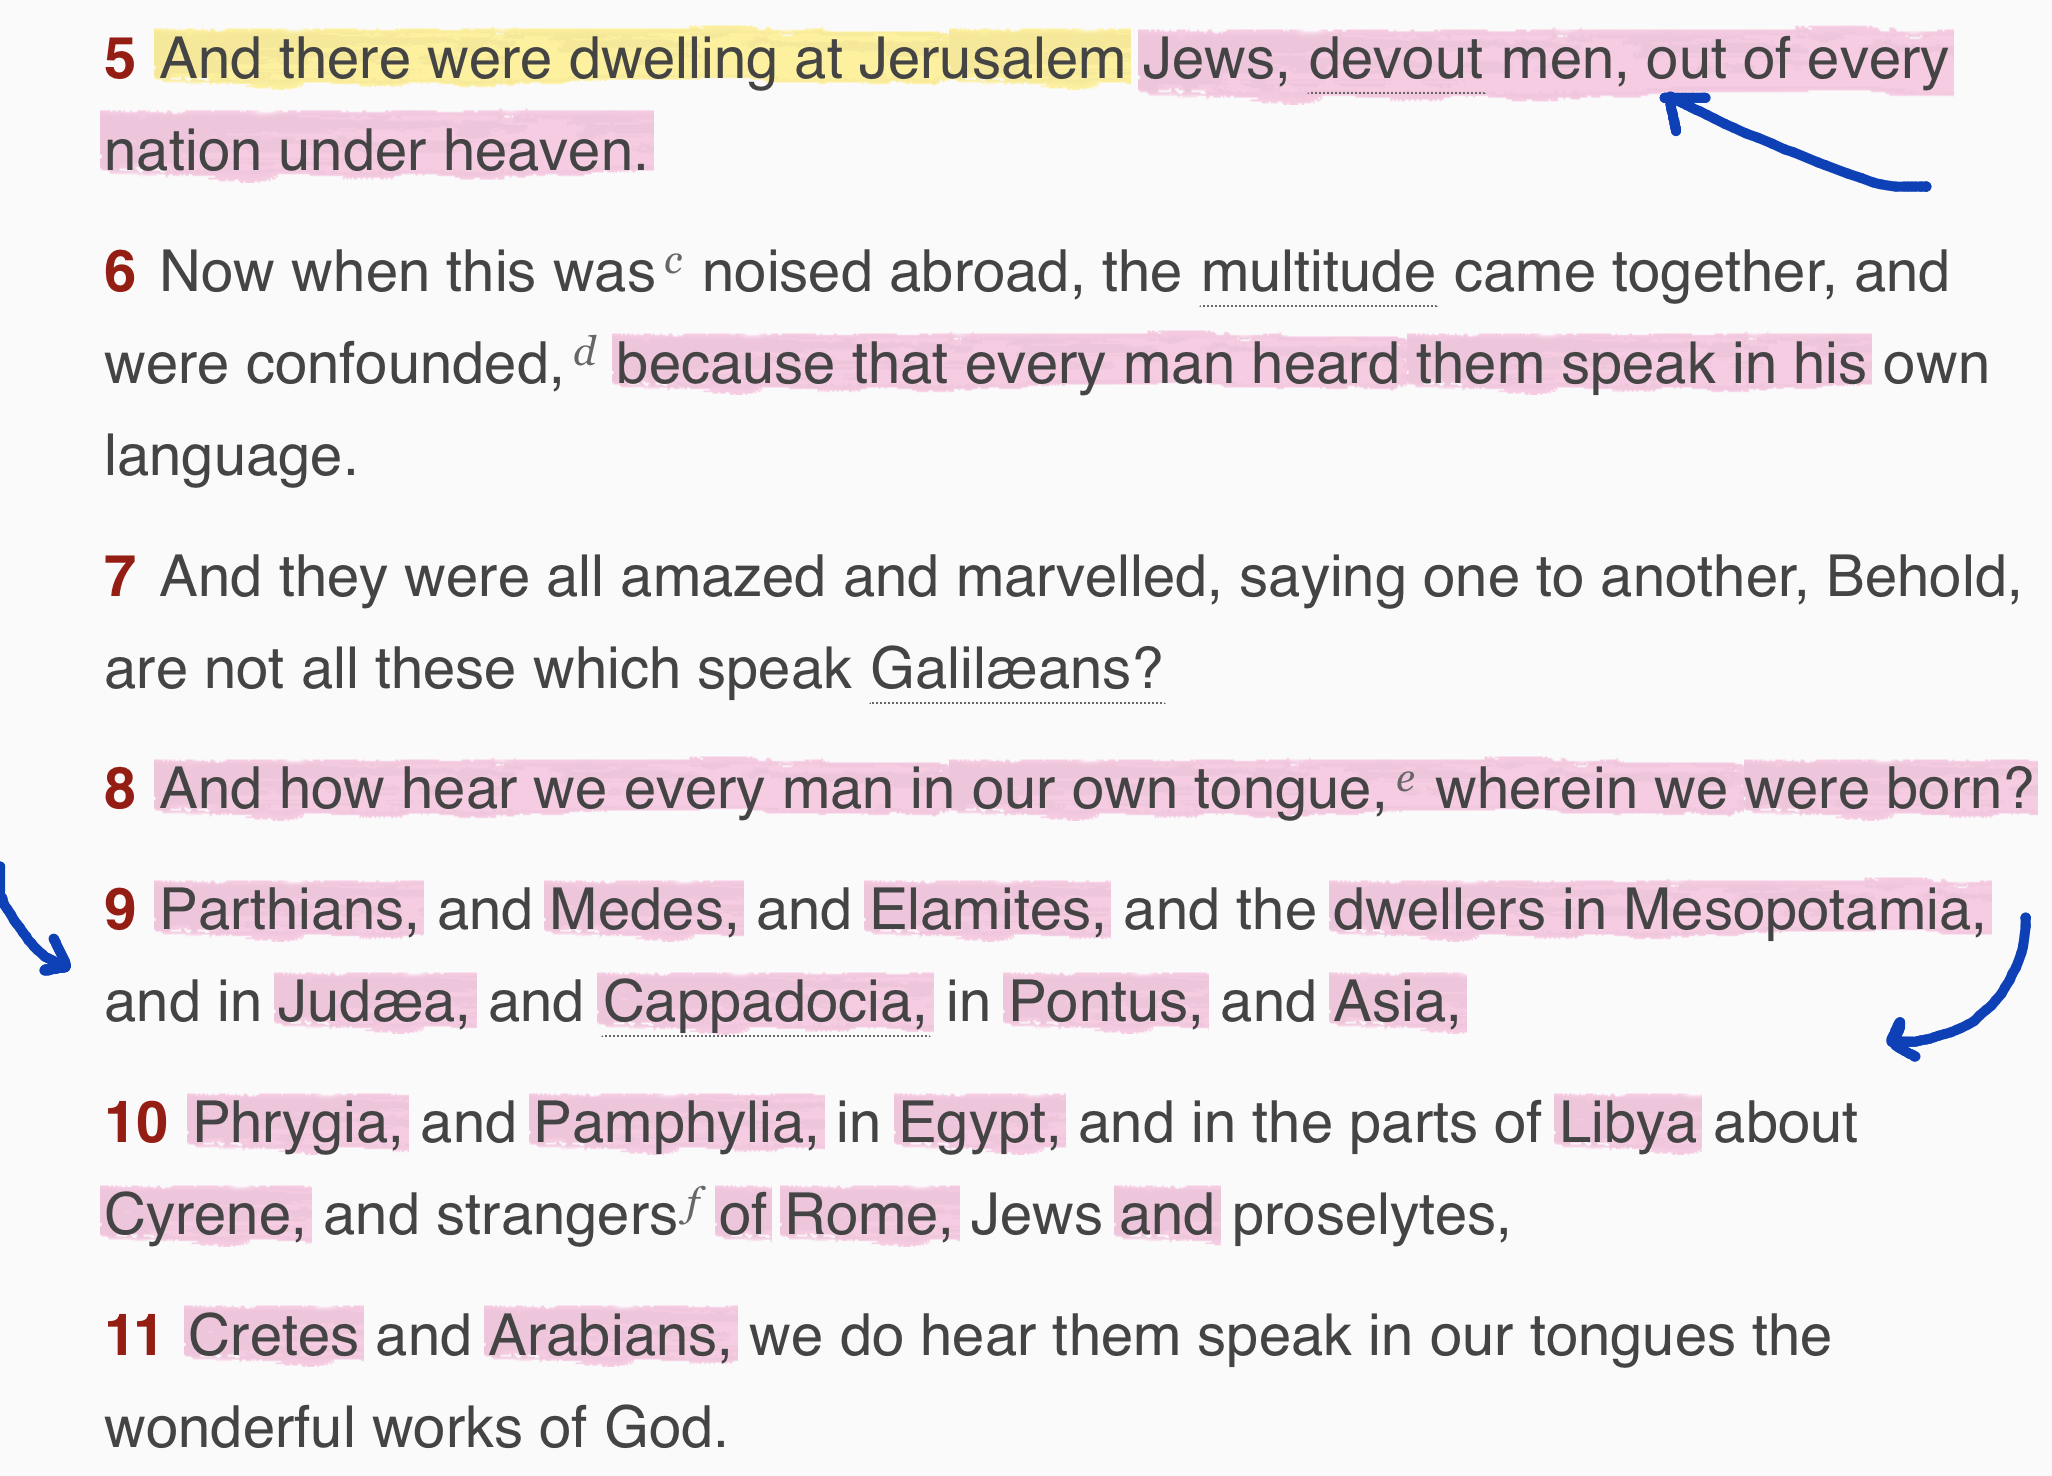 Jesus or Yeshua? One scripture in multiple languages...